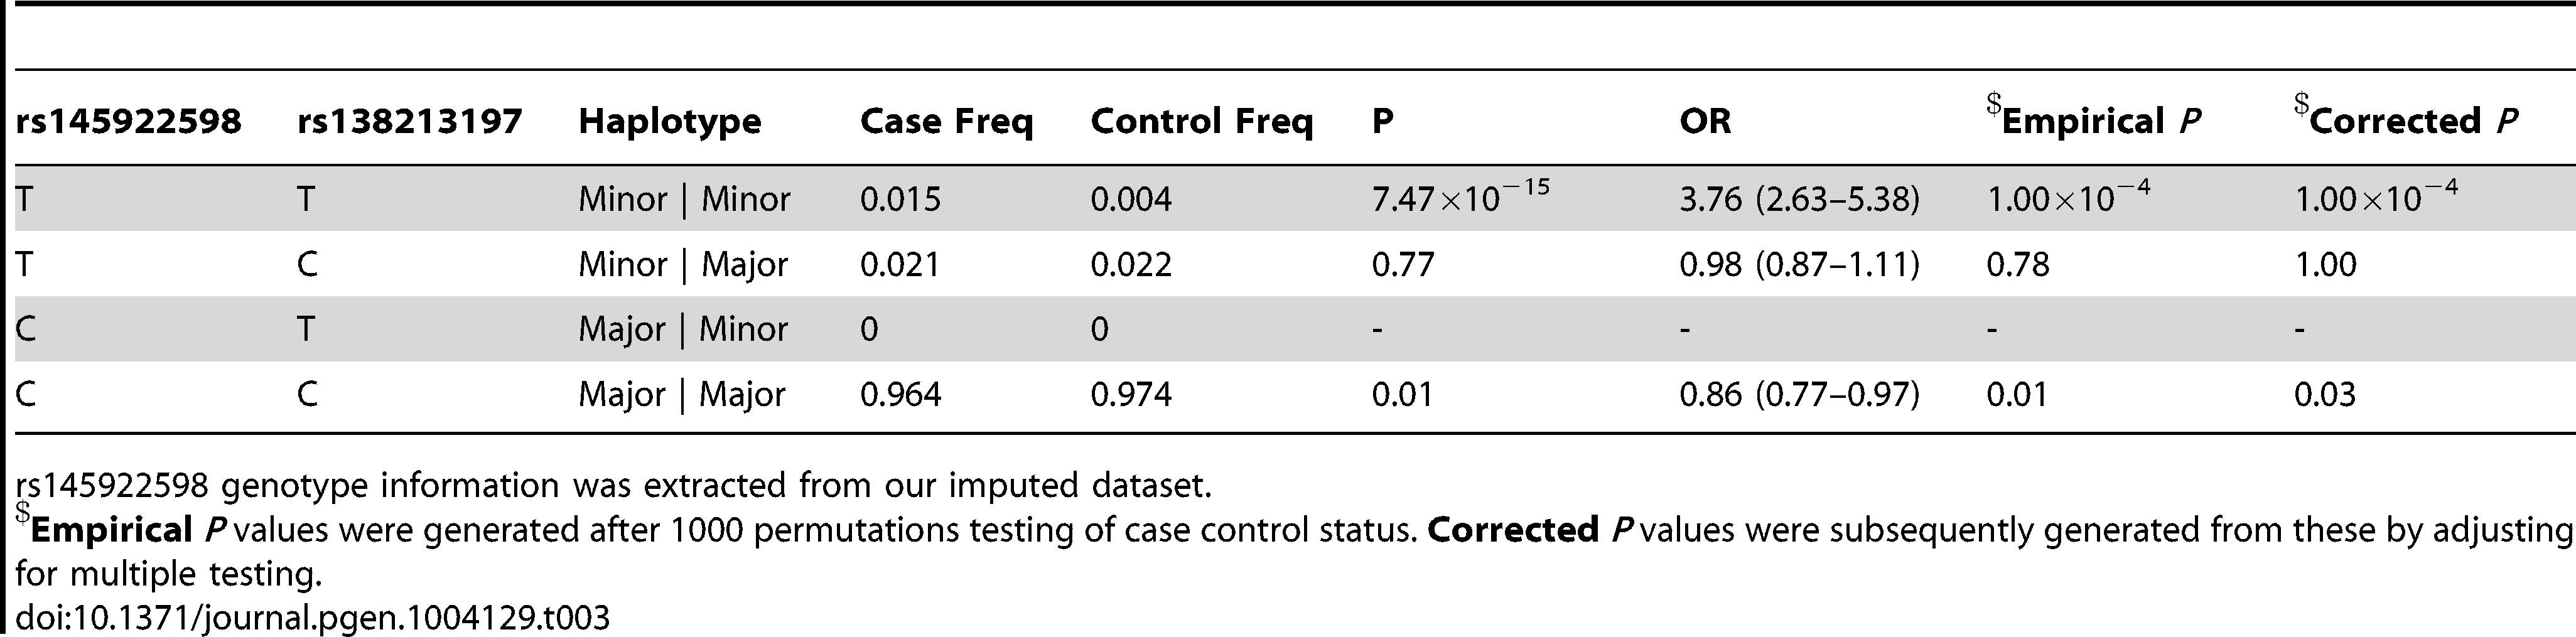 Haplotype analysis for rs145922598 and rs138213197 in the subset of 5500 PrCa cases and 4923 controls from the UK and Sweden genotyped for rs138213197.